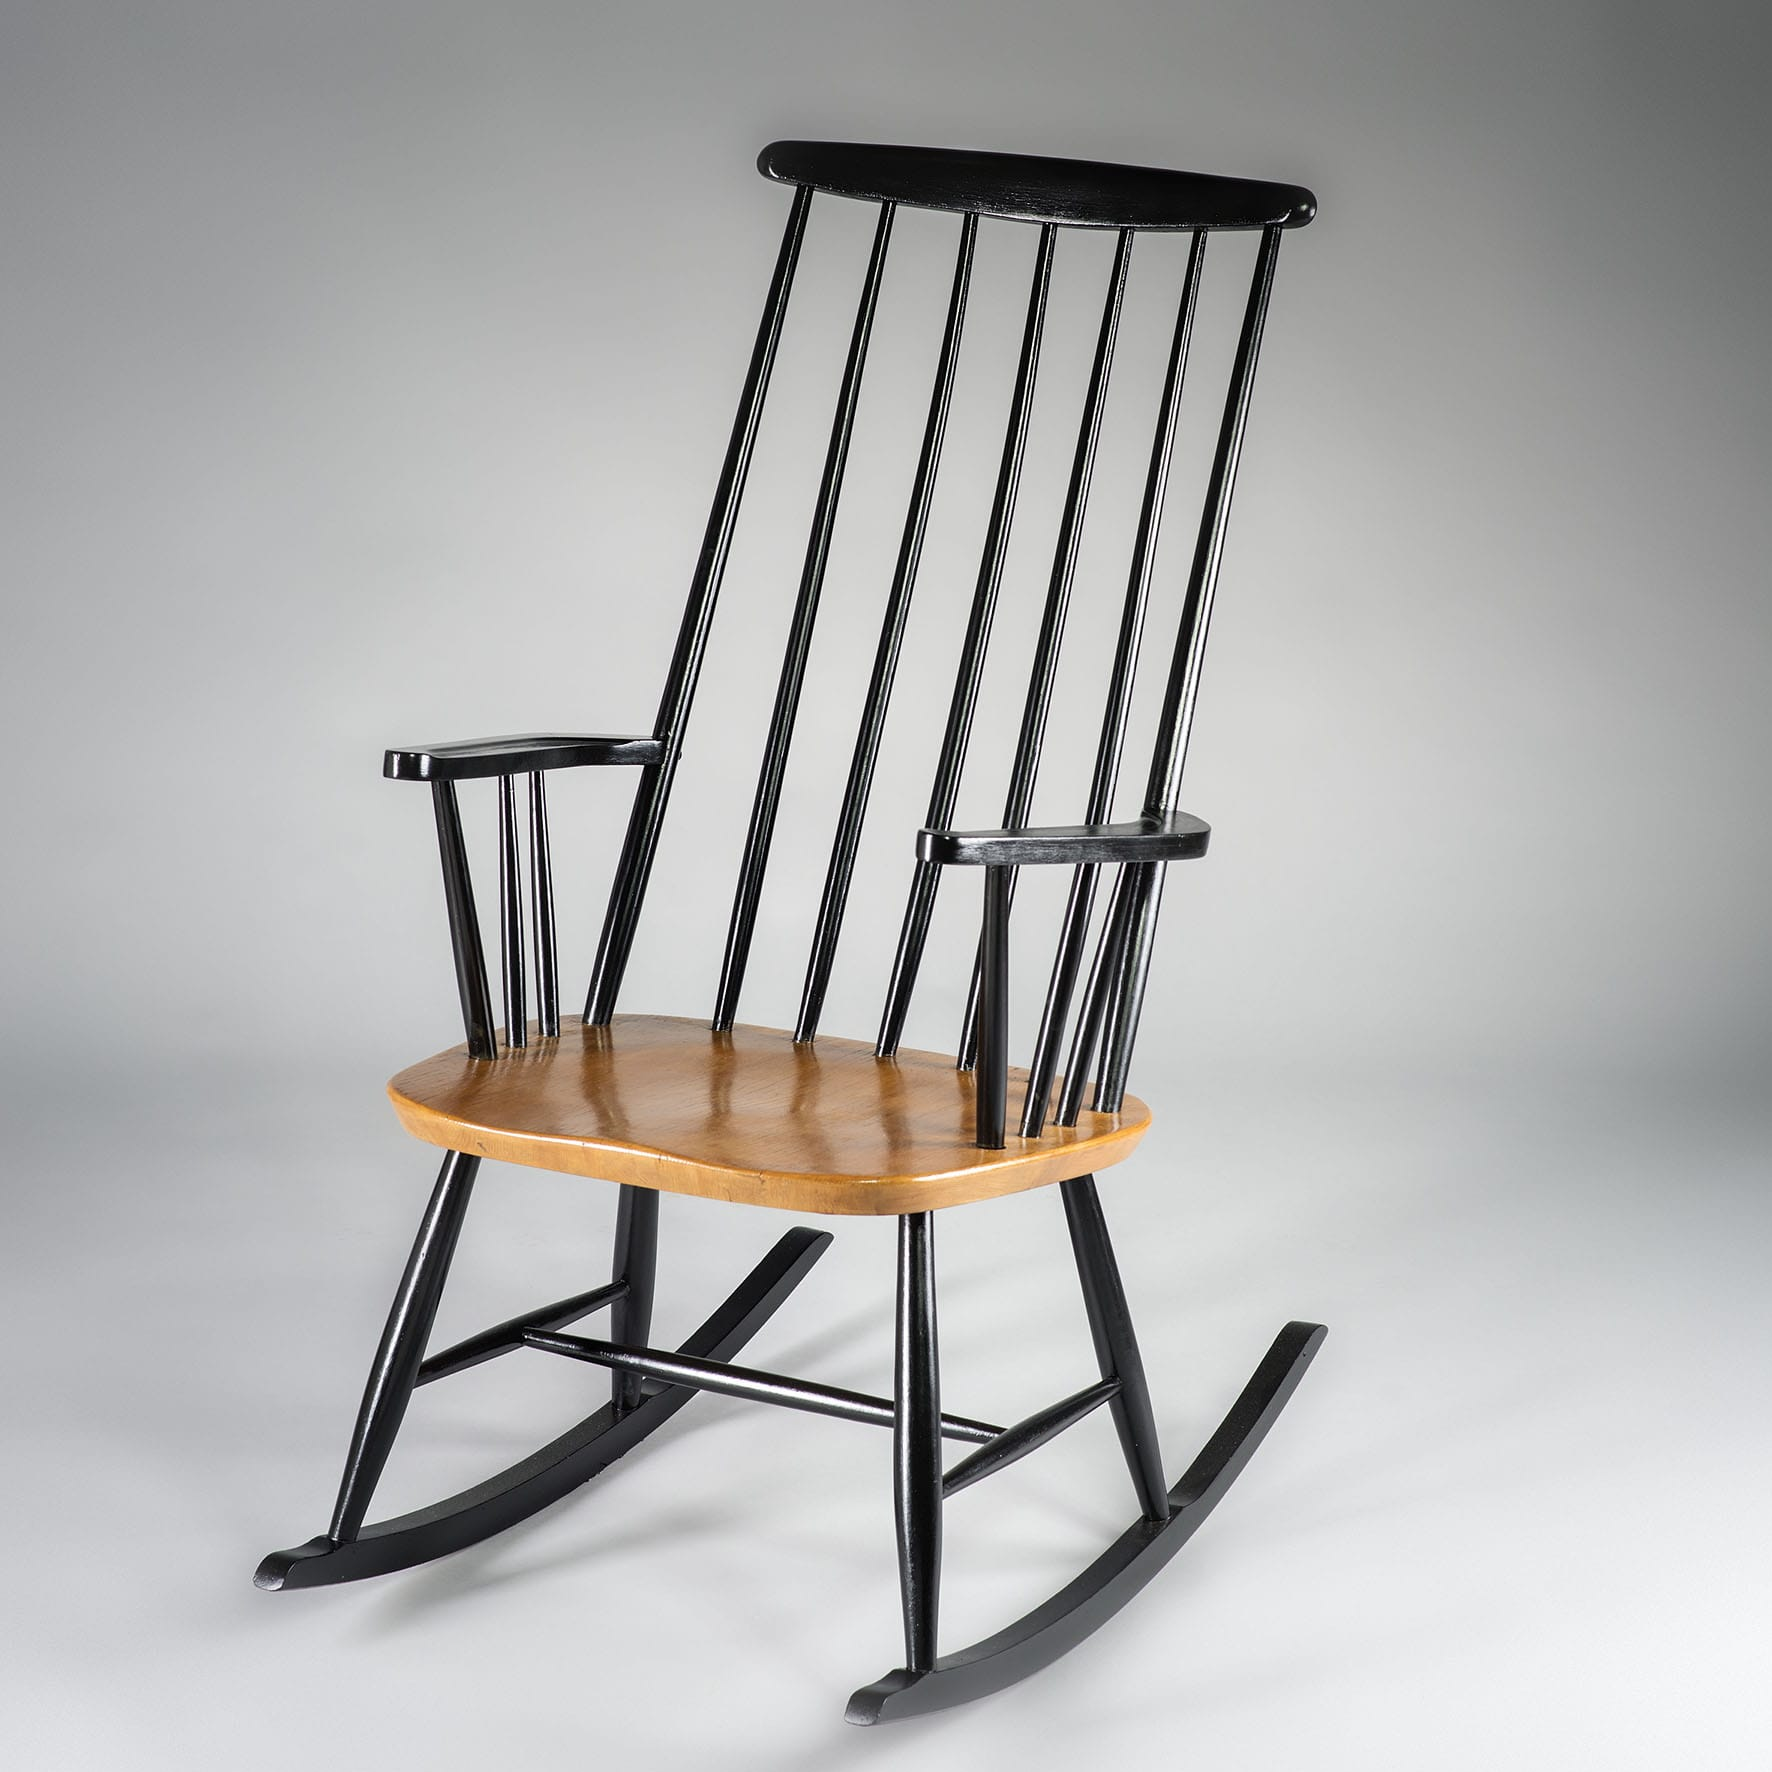 rocking chair ilmari tapiovaara rocker lignedebrocante brocante en ligne chine pour vous. Black Bedroom Furniture Sets. Home Design Ideas